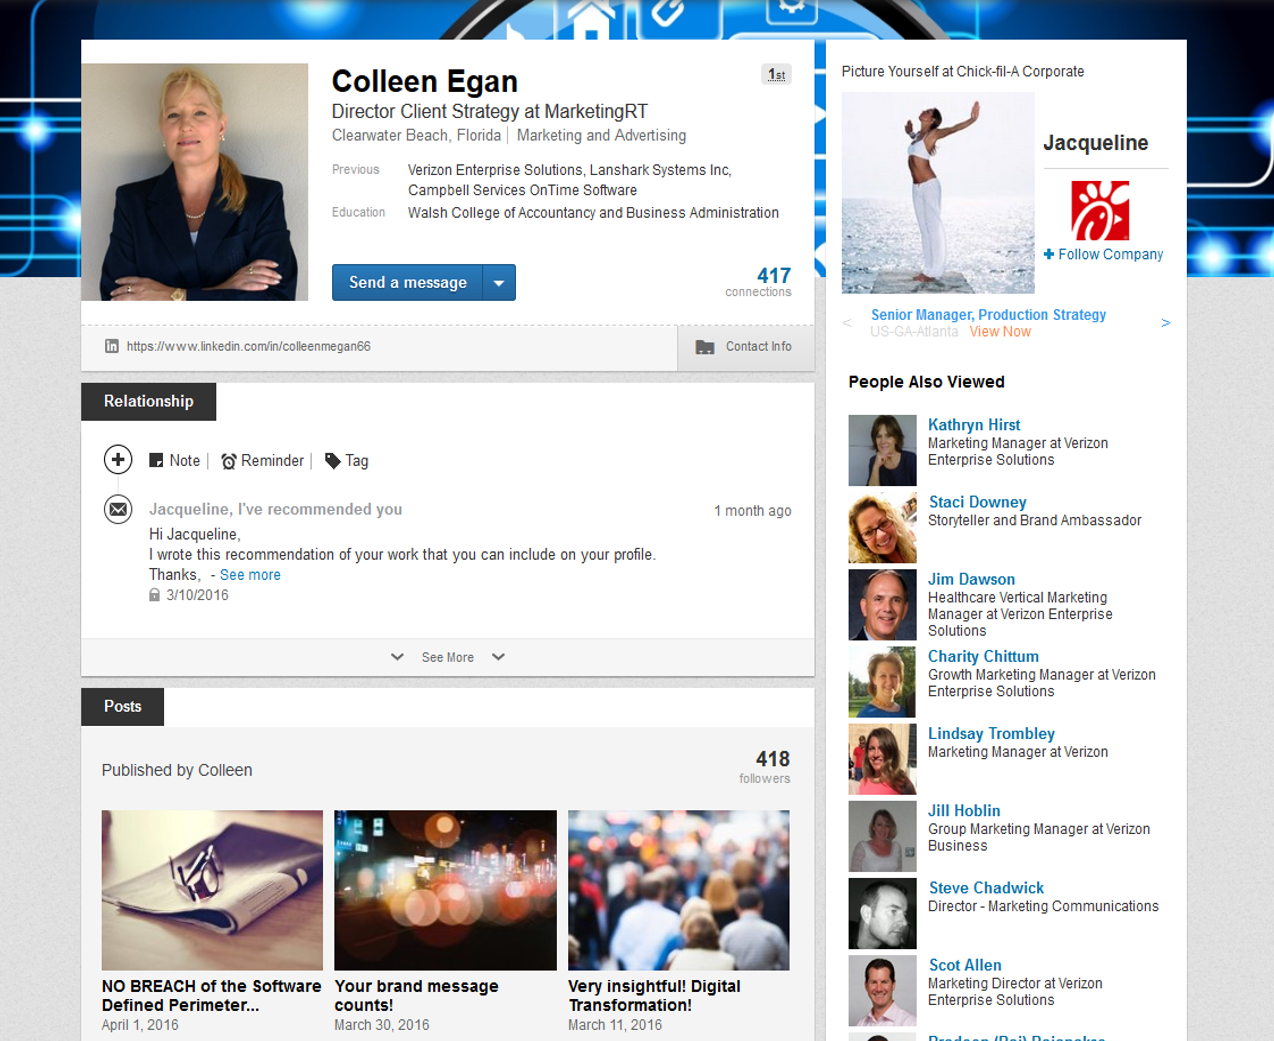 Project: Social - LInkedIn - Colleen Egan